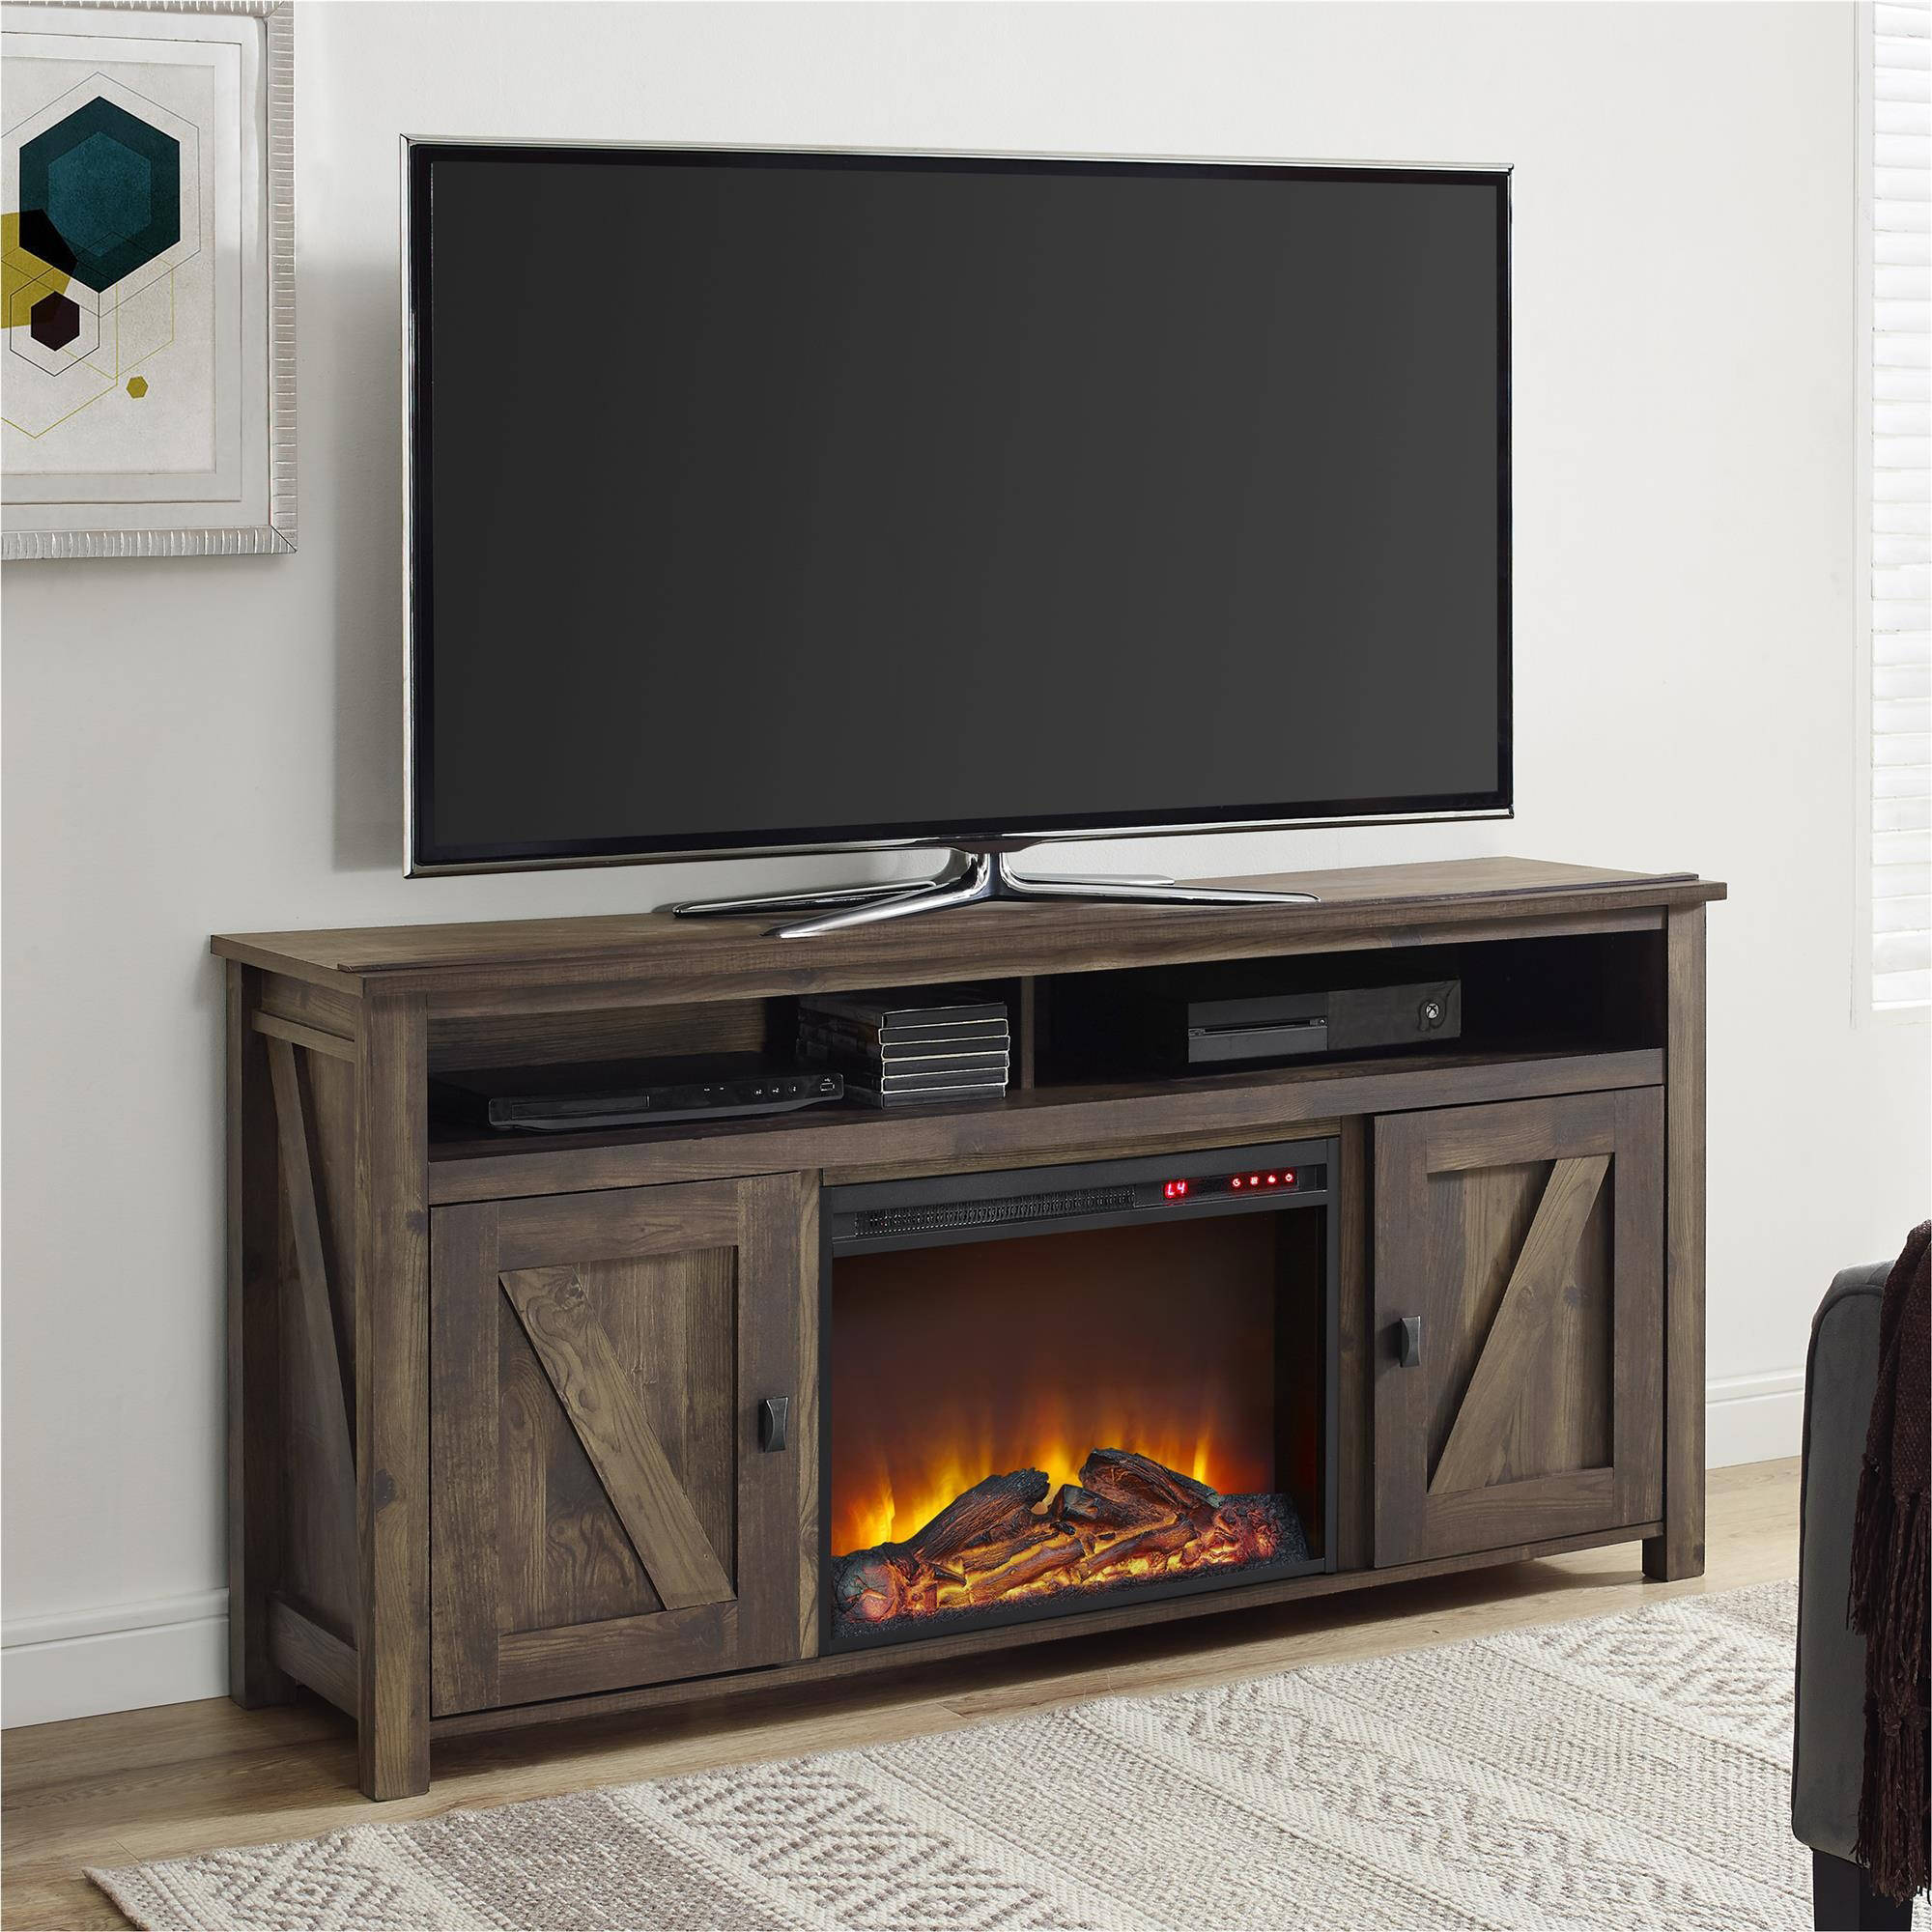 classicflame transcendence mount fireplaces wallmount wall hanging electric fireplace